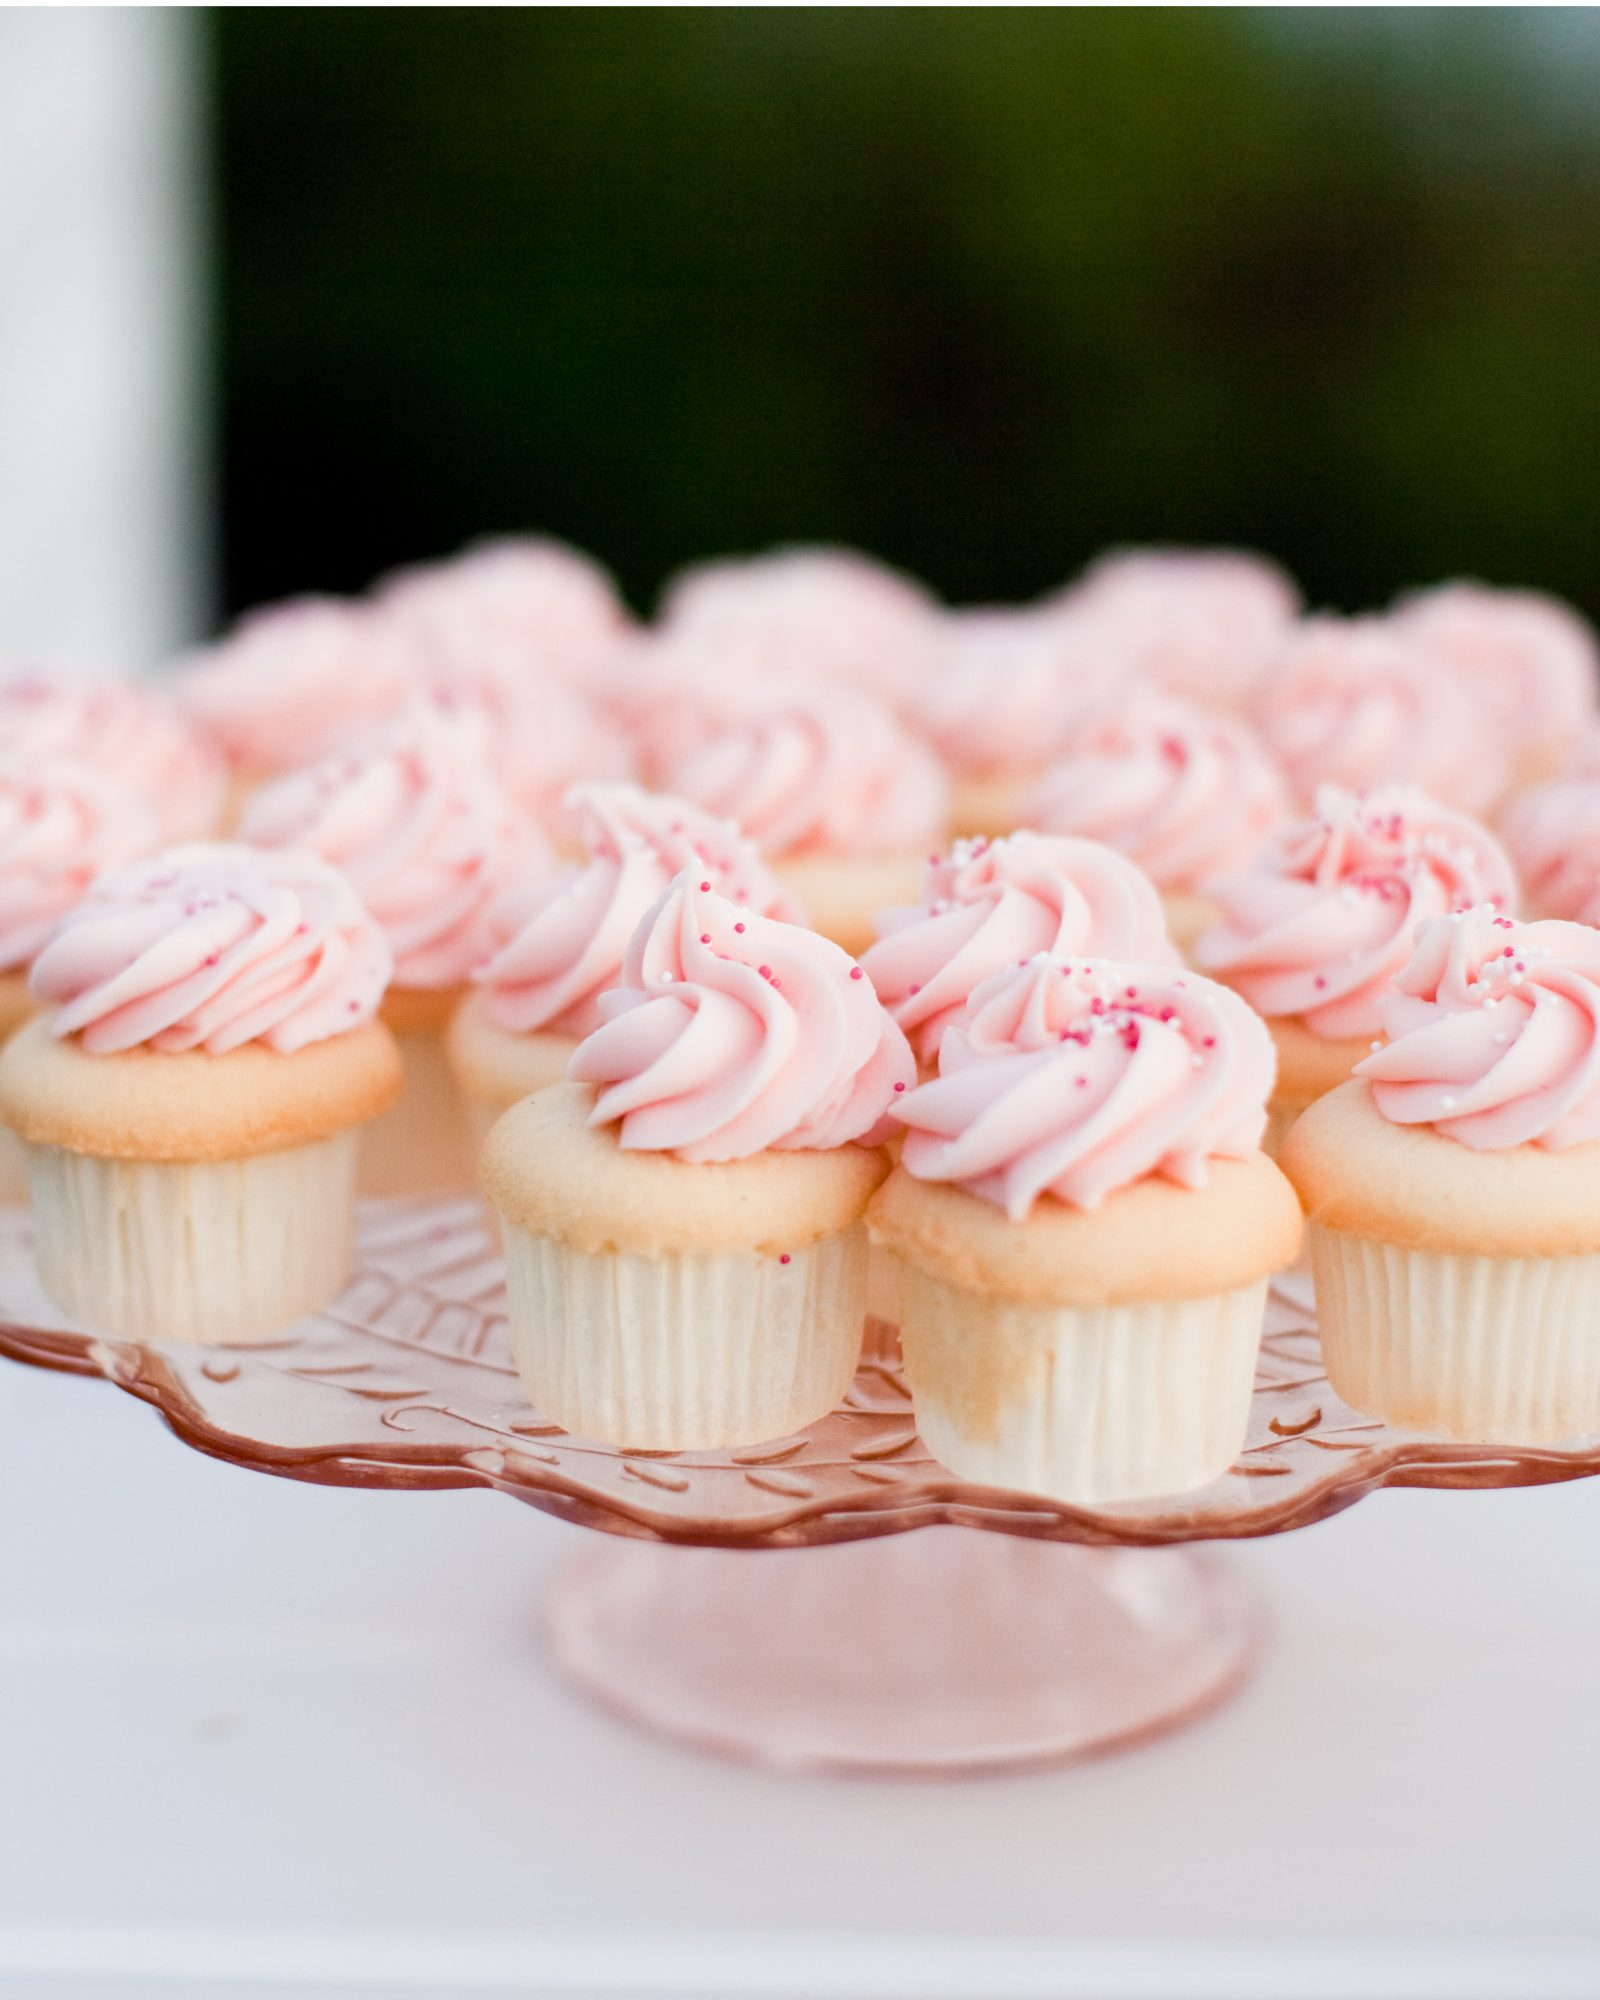 valentines-day-ideas-real-weddings-cupcakes-0115.jpg